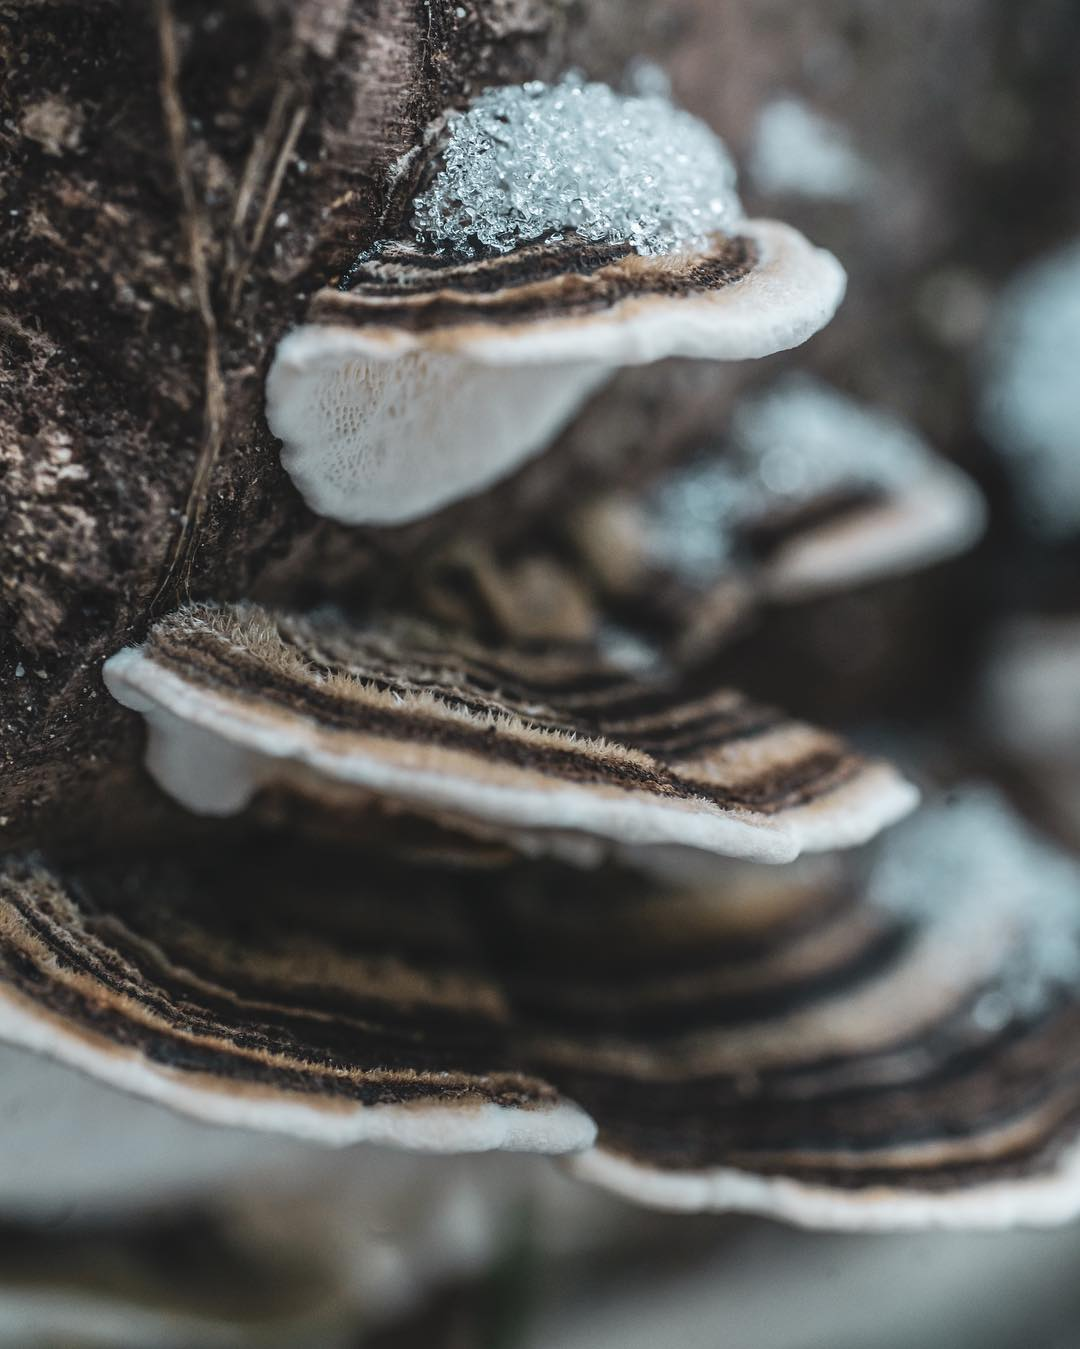 Close up turkey tail species of mushrooms covered on the edges with snow